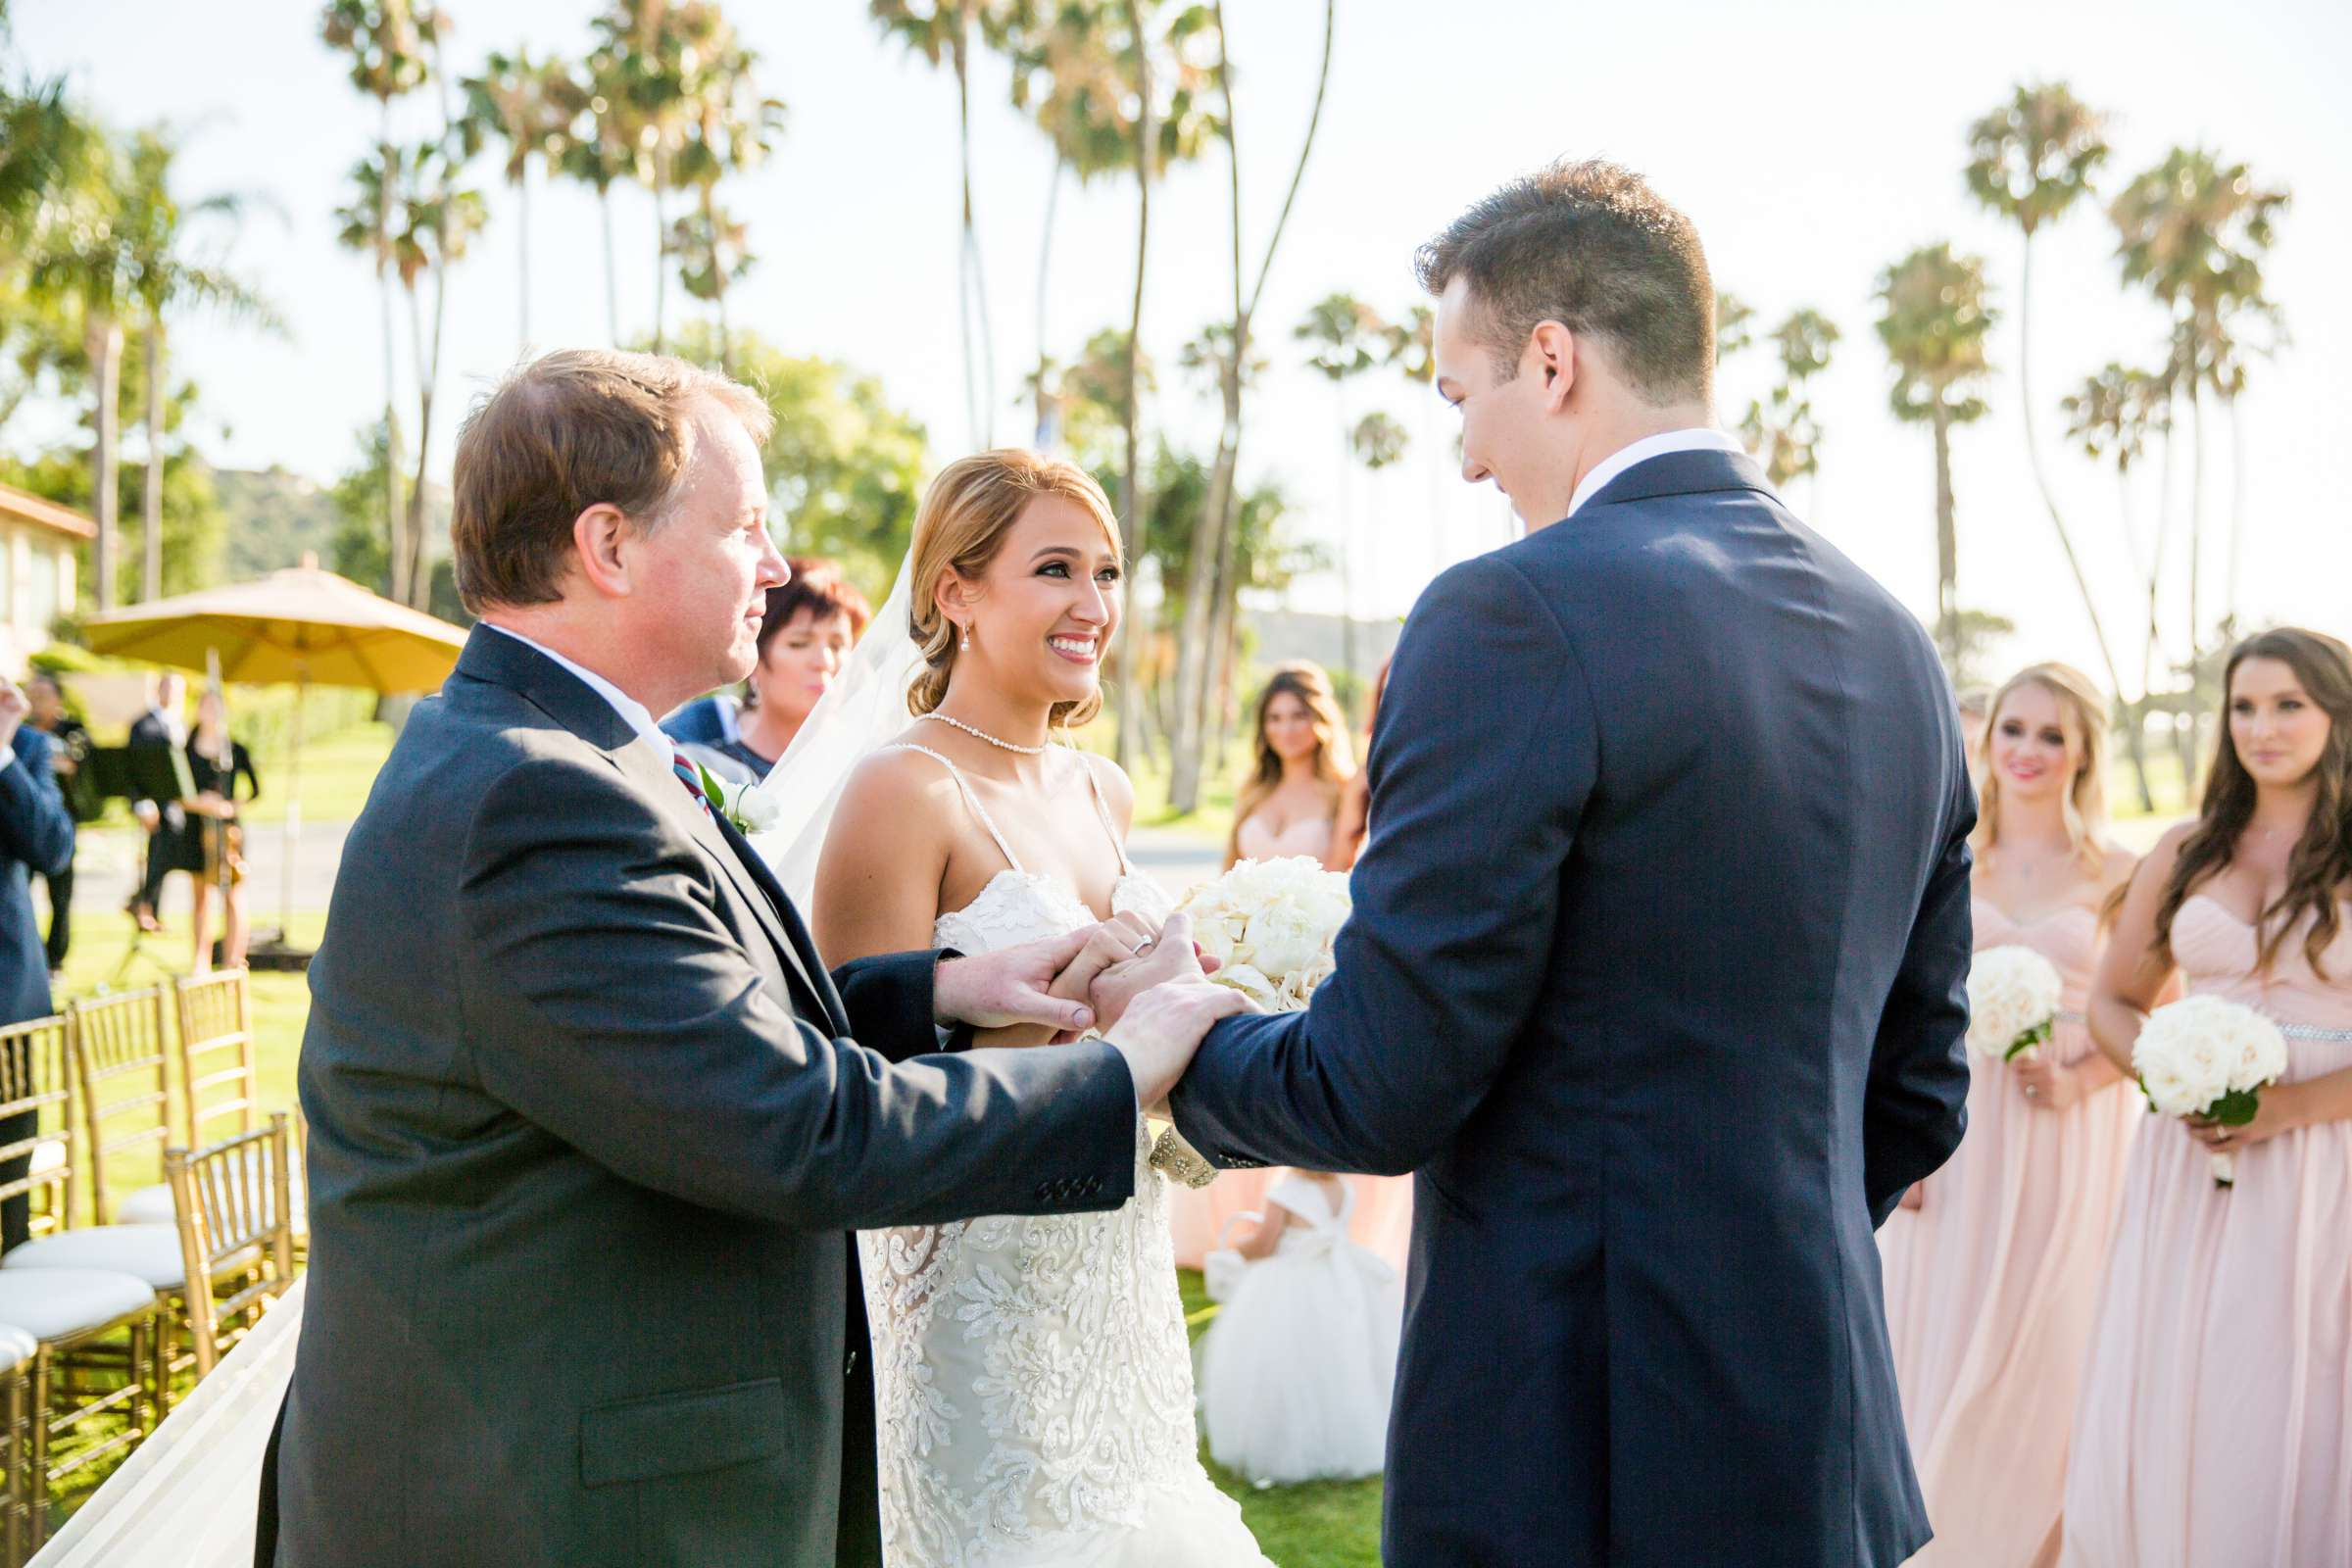 Fairbanks Ranch Country Club Wedding coordinated by Monarch Weddings, Gabriella and Kyle Wedding Photo #85 by True Photography